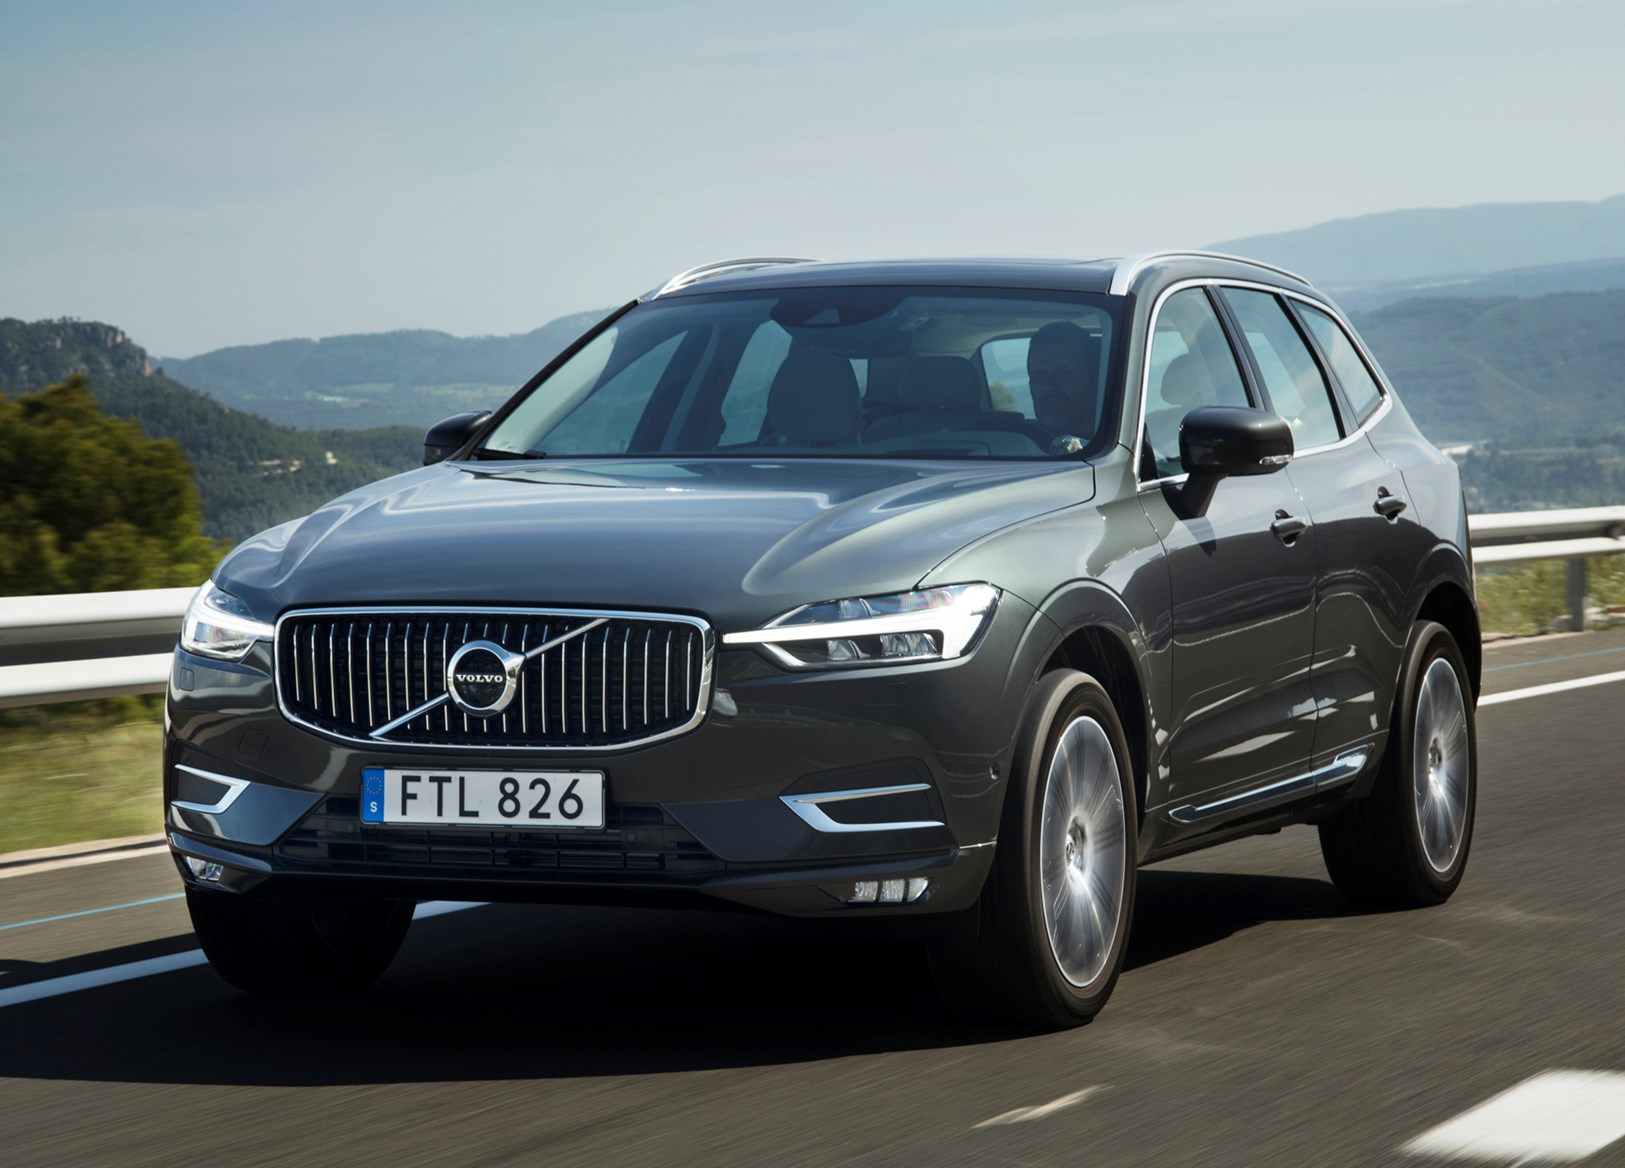 Volvo v60 cross country review 2015 parkers - Volvo 2017 Xc60 Driving Volvo 2017 Xc60 Driving